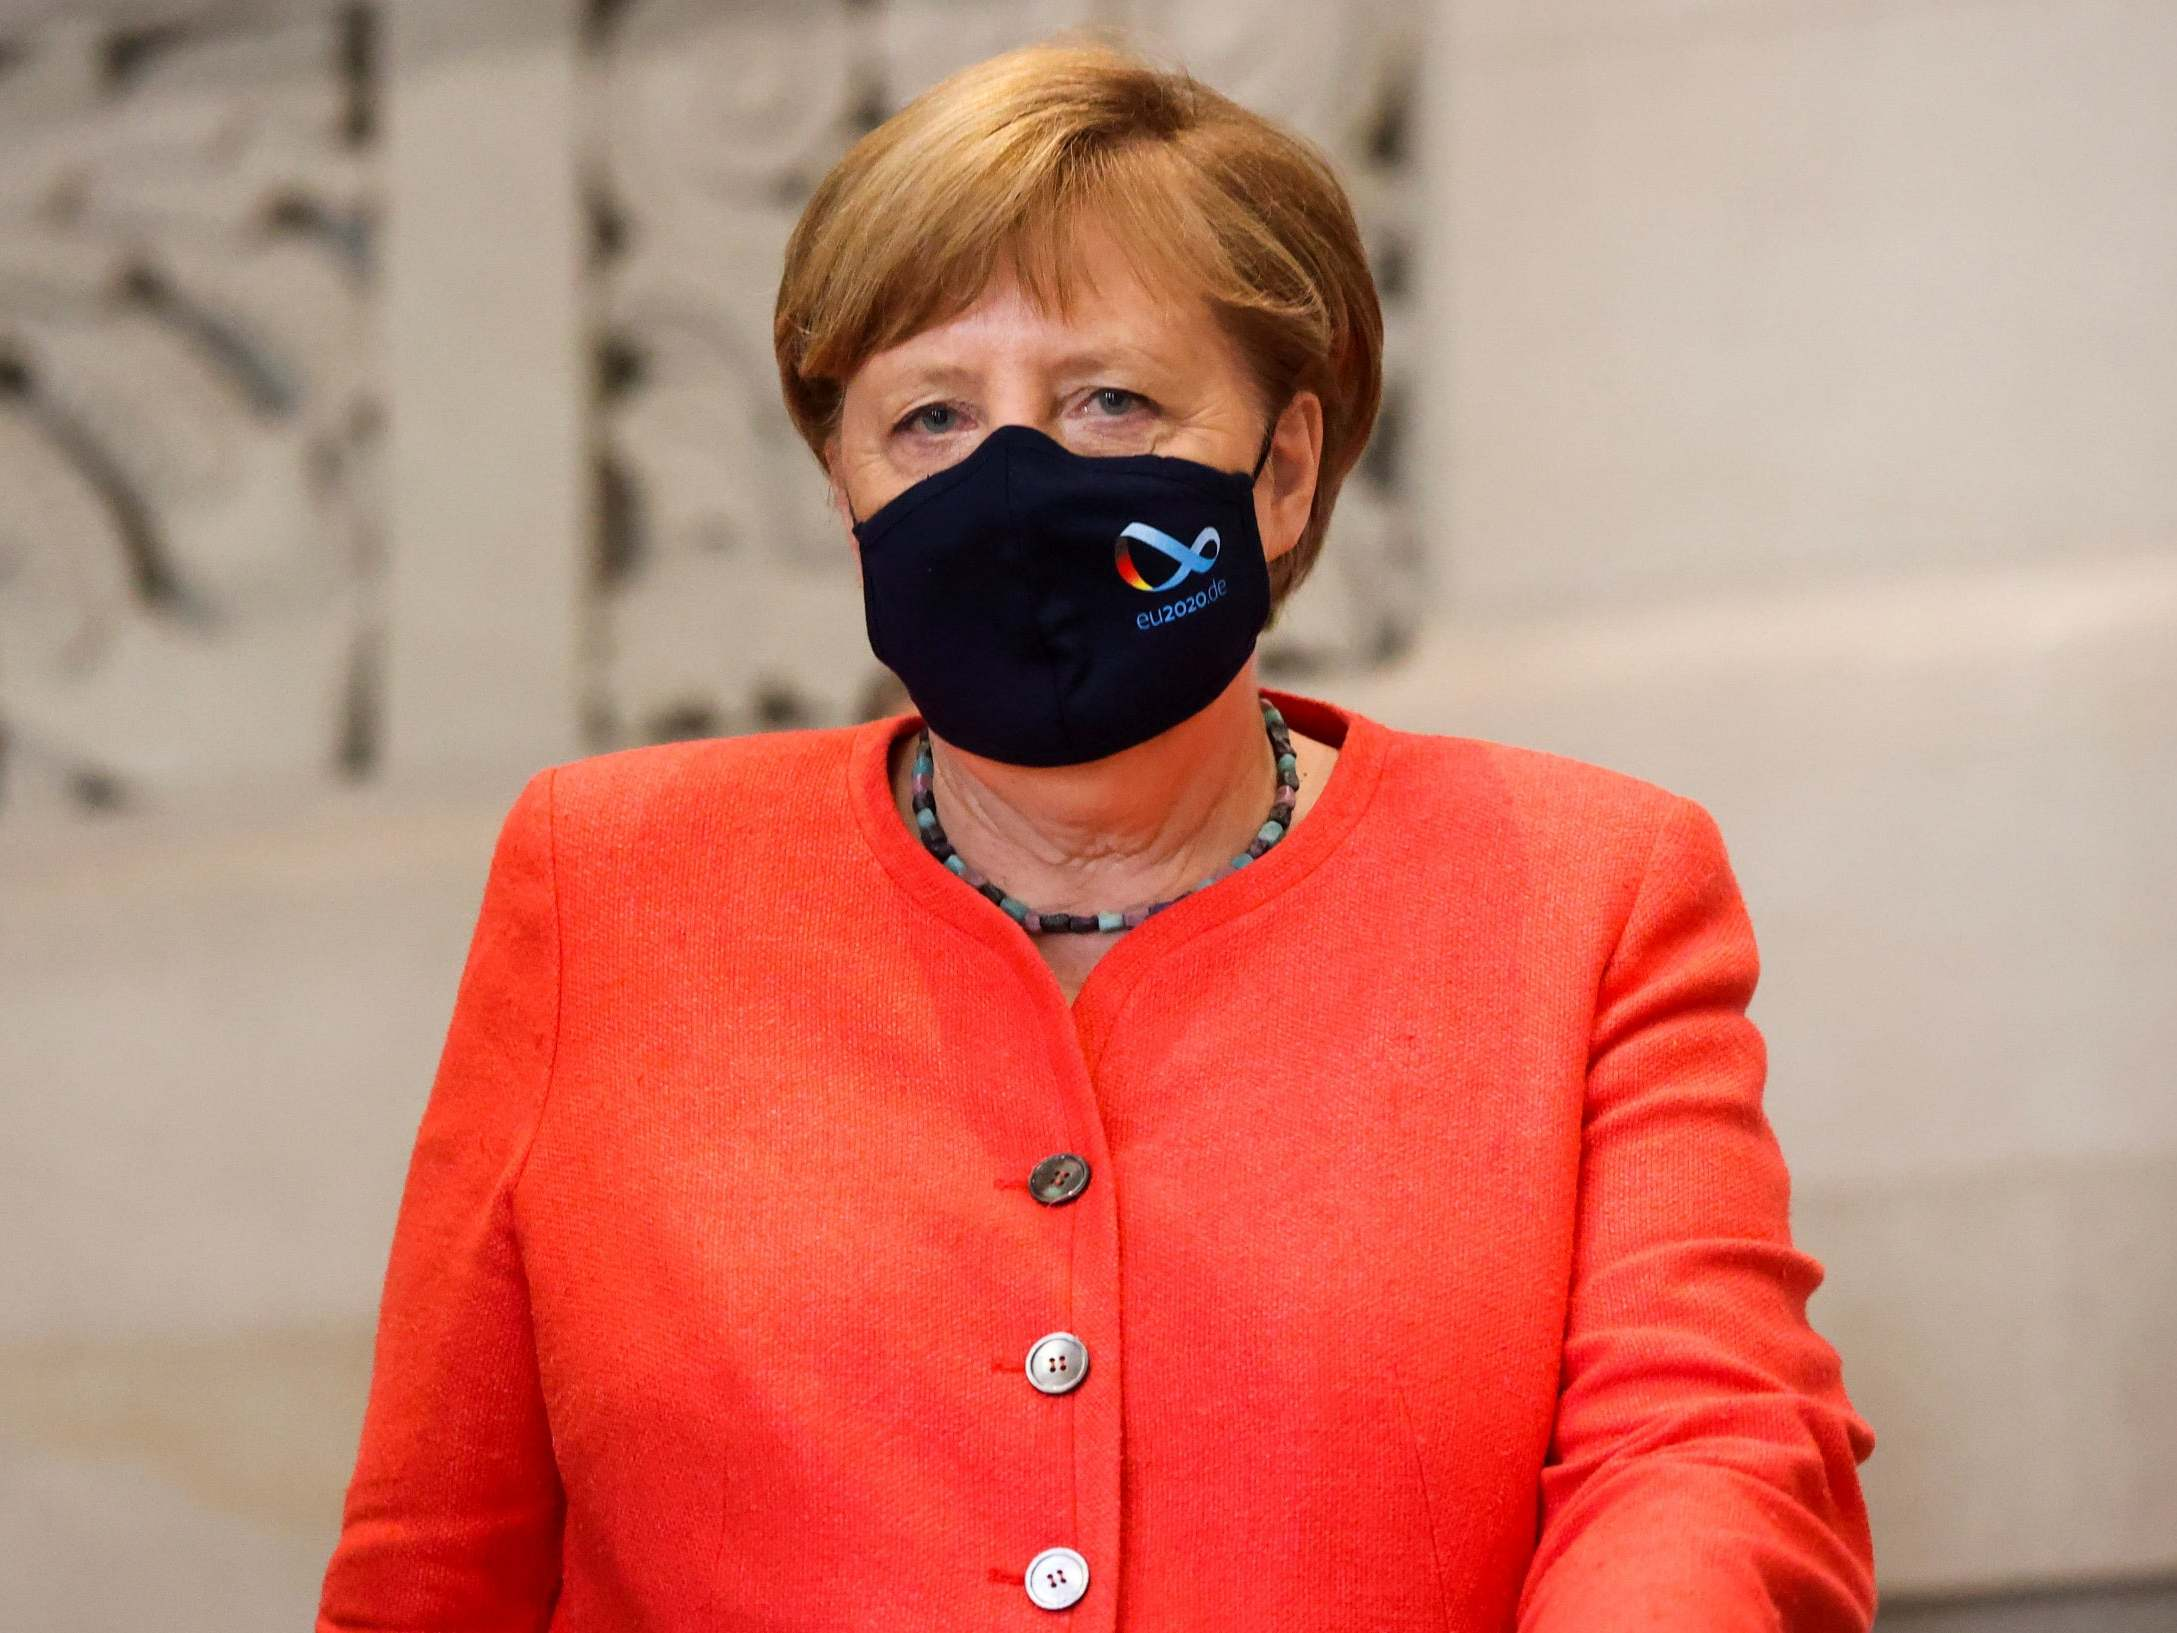 Coronavirus: Angela Merkel seen wearing face mask in public for first time following accusations of hypocrisy 9